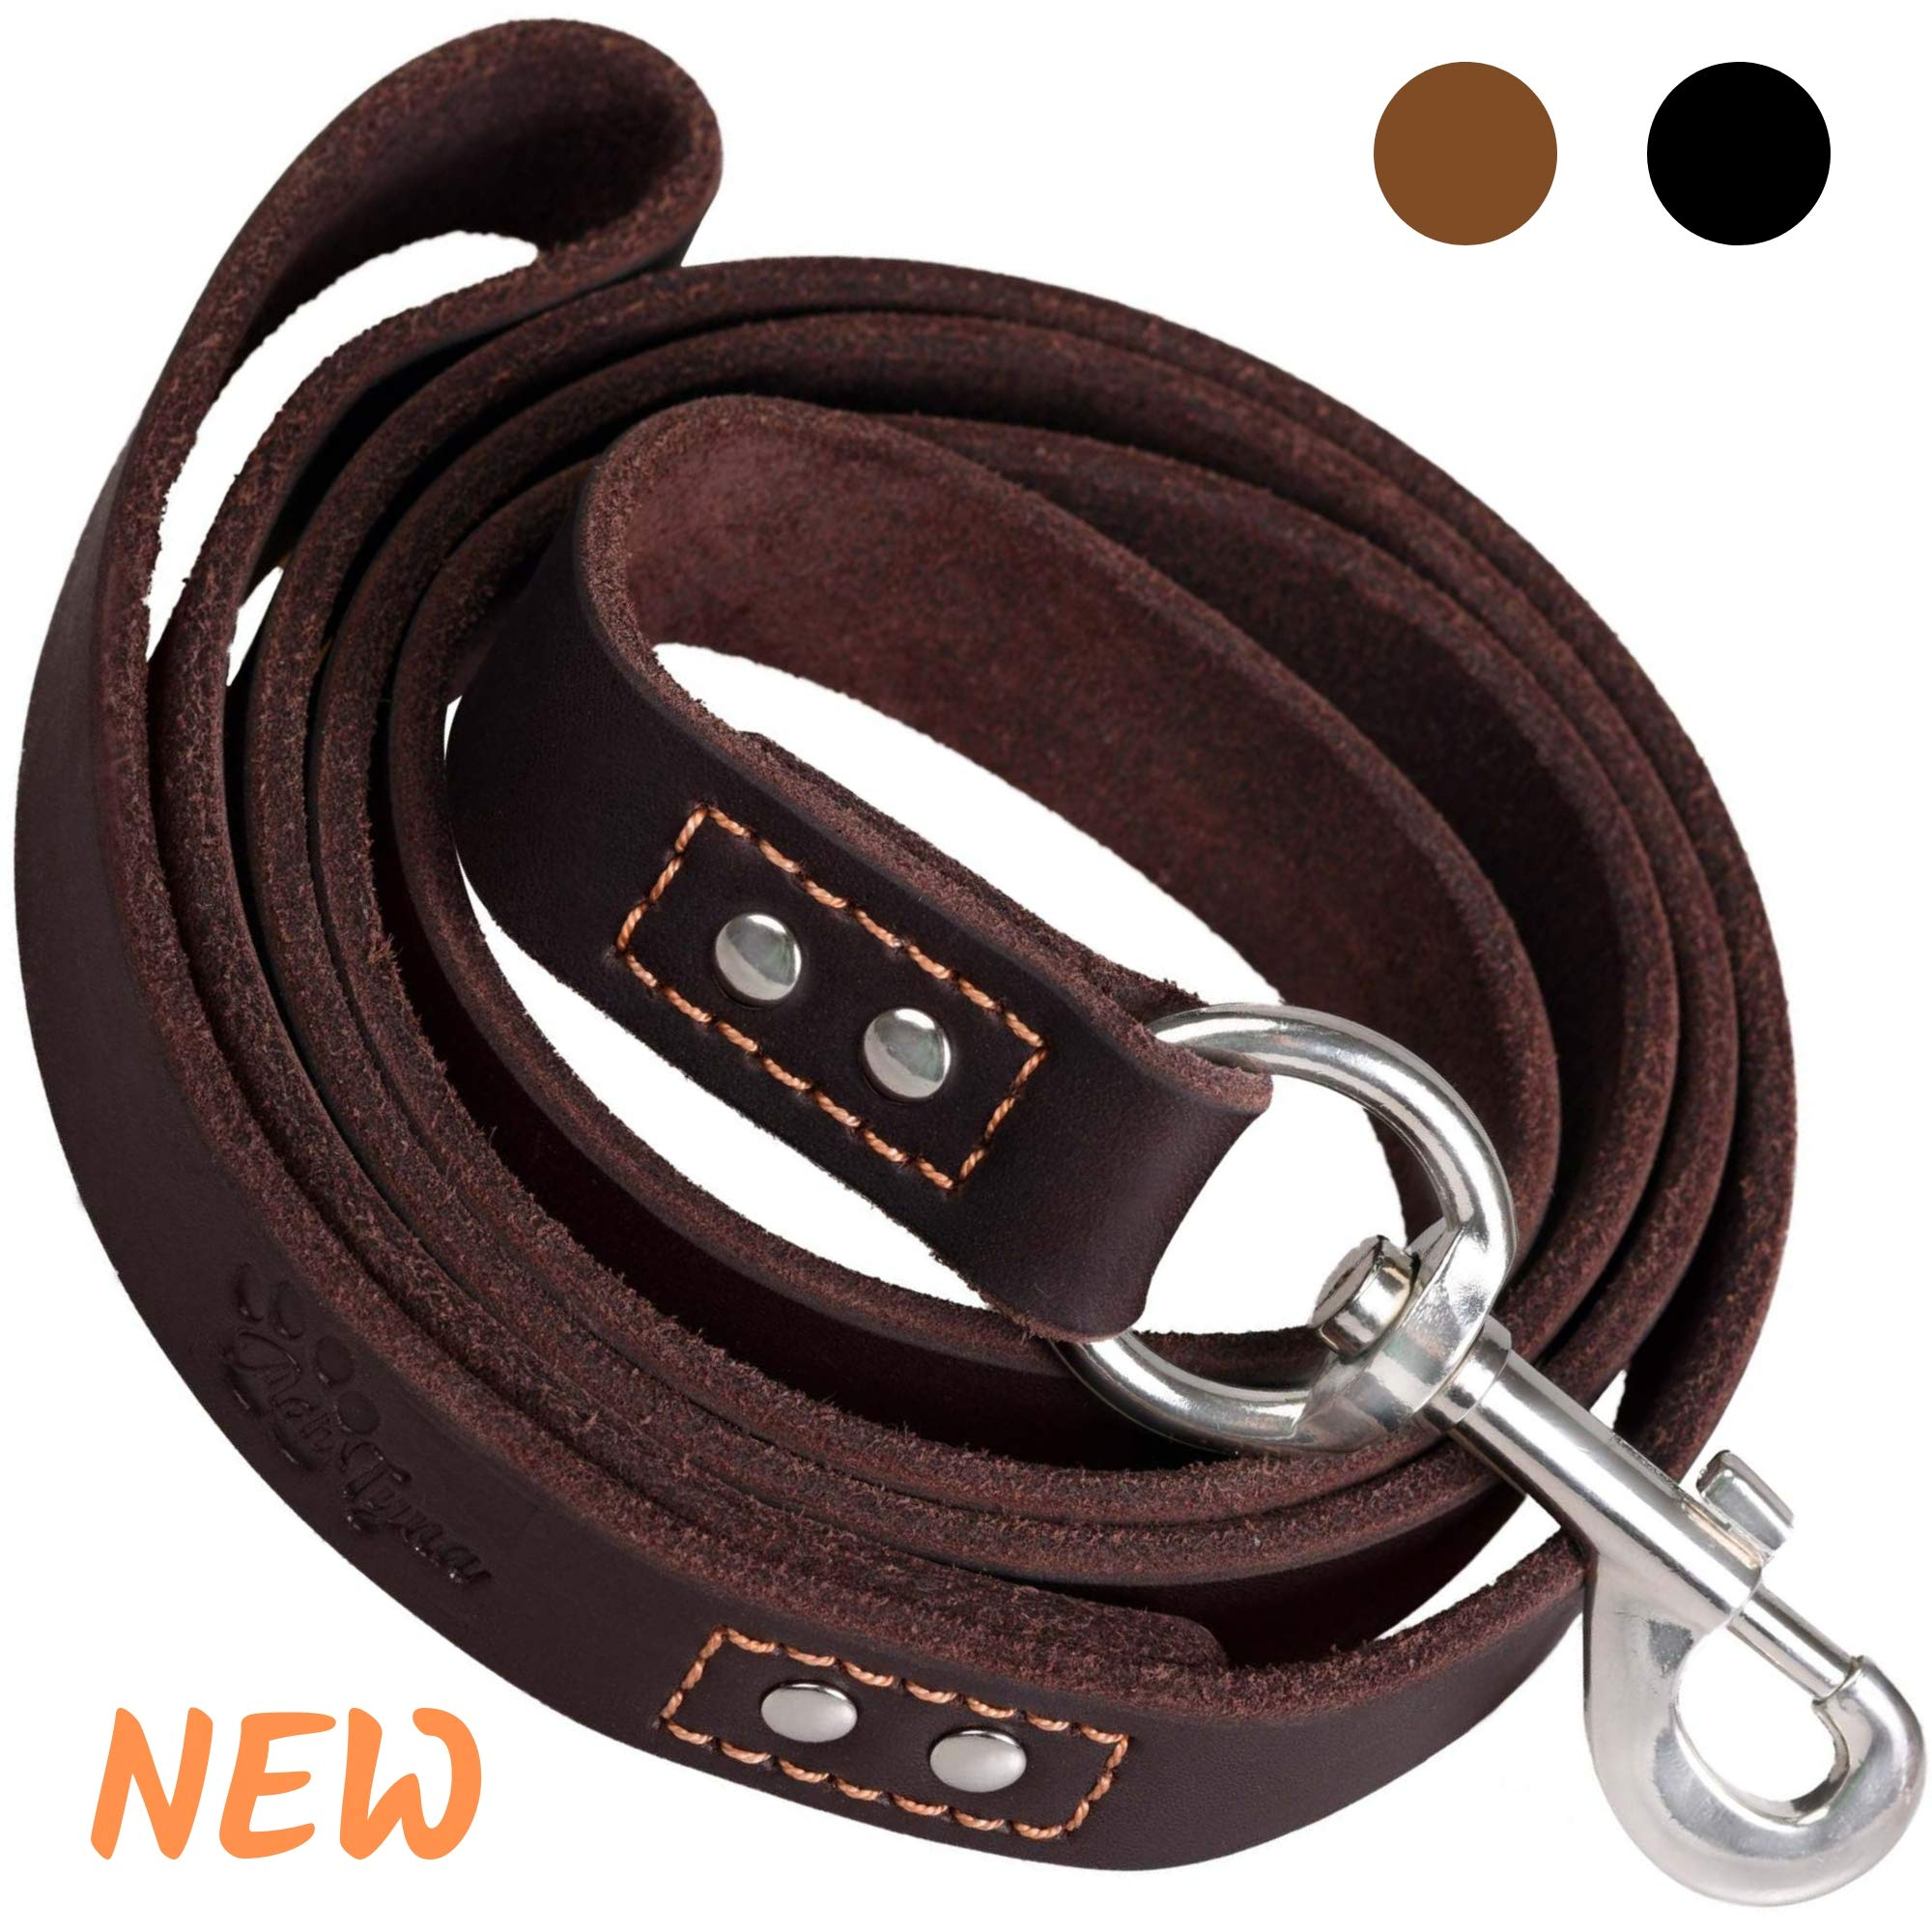 ADITYNA - Heavy Duty Leather Dog Leash 6 Foot - Strong and Soft Leather Leash for Extra Large, Large and Medium Dogs - Dog Training Leash (XL - 6 ft x 1 inch, Brown)